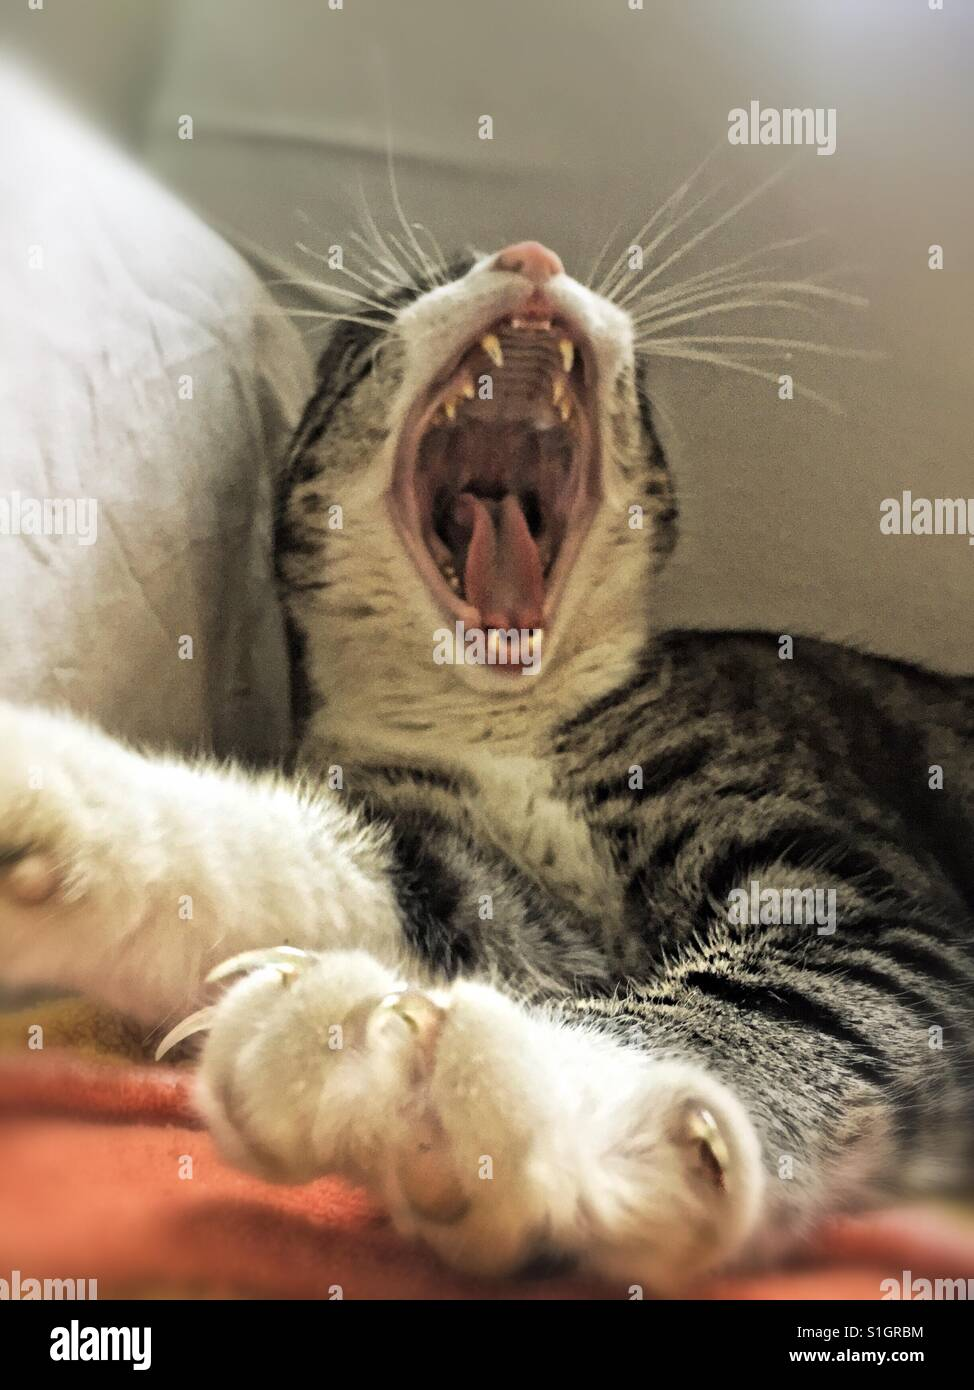 Paw... yawning...cat! - Stock Image